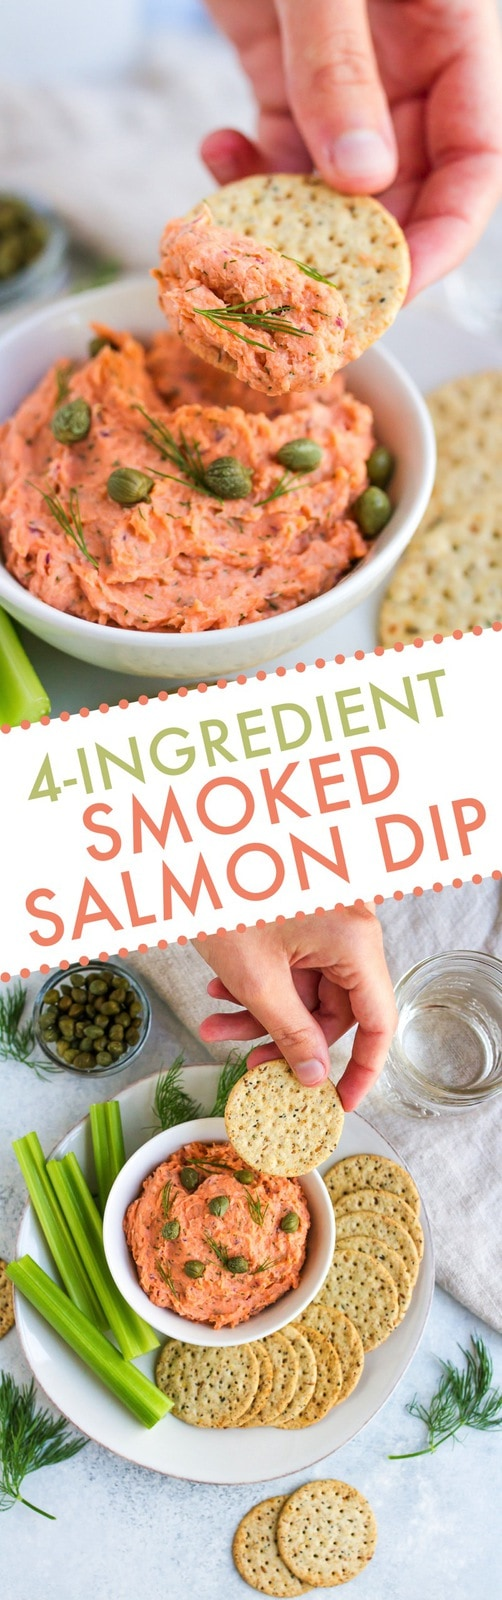 This 4-ingredient smoked salmon dip is so easy to make, loaded with flavor and provides a ton of protein. Serve with crackers and veggies as an appetizer or pack it up for a work lunch!